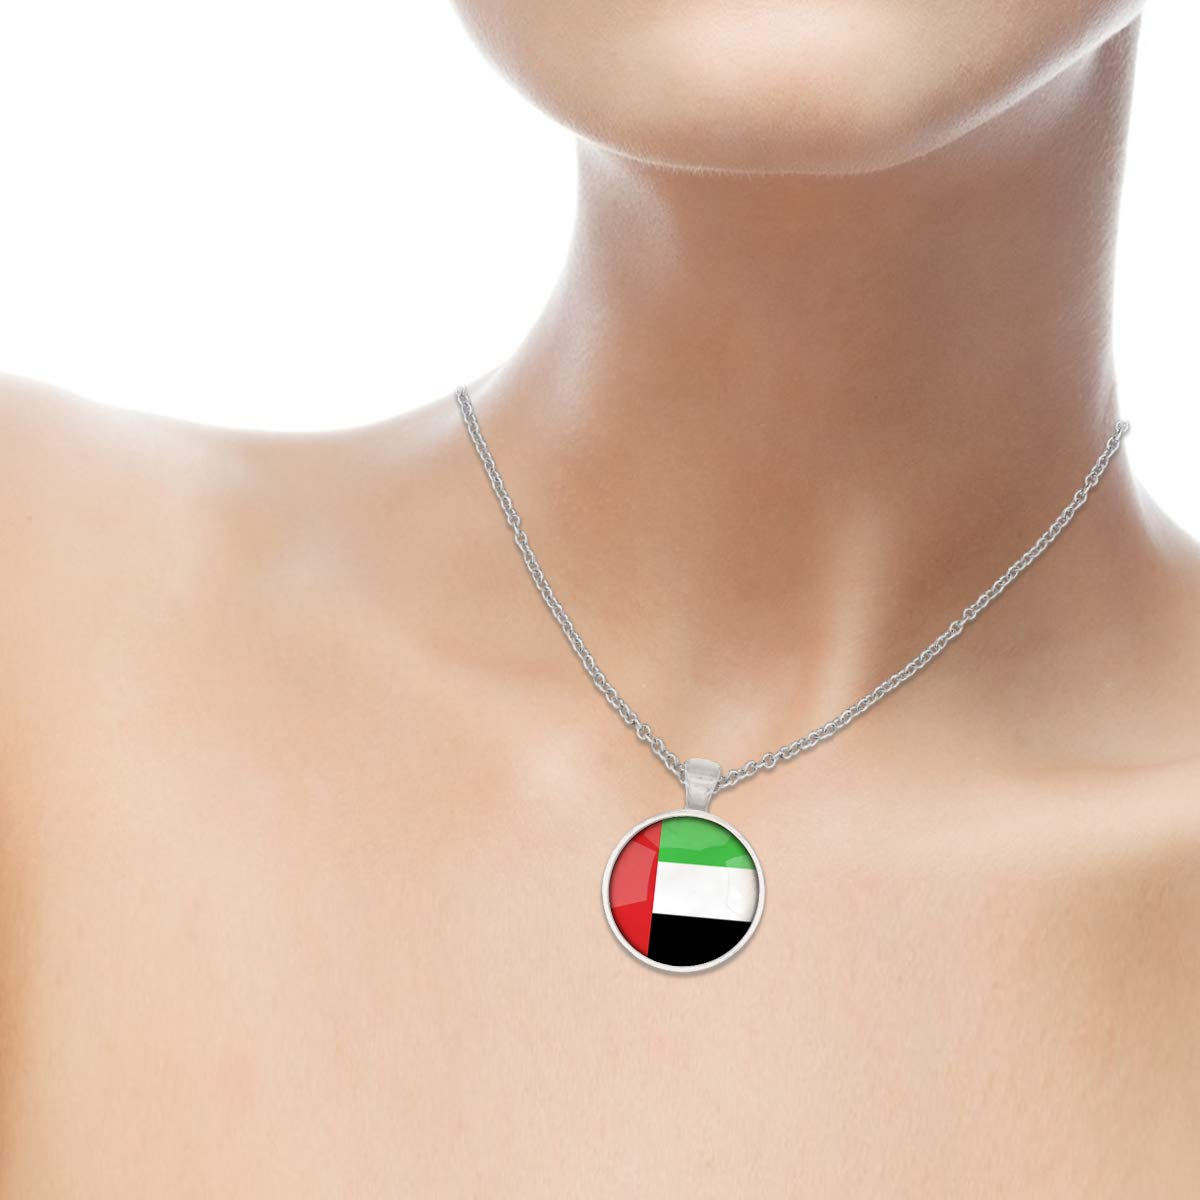 Family Decor The United Arab Emirates National Flag Pendant Necklace Cabochon Glass Vintage Bronze Chain Necklace Jewelry Handmade